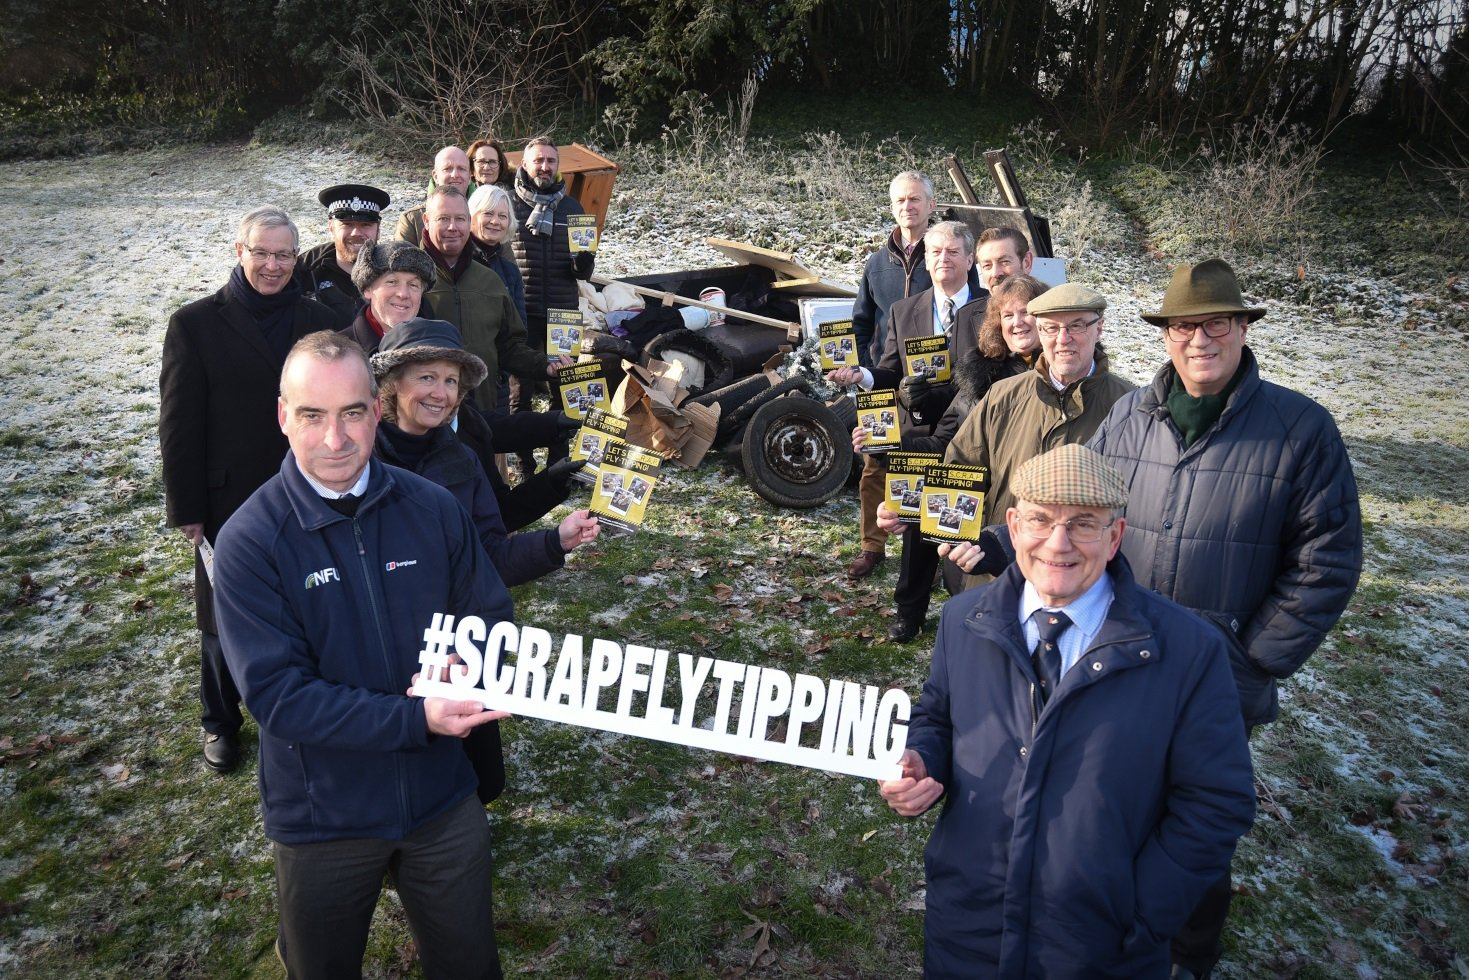 Scrap fly tipping - Campaign partners